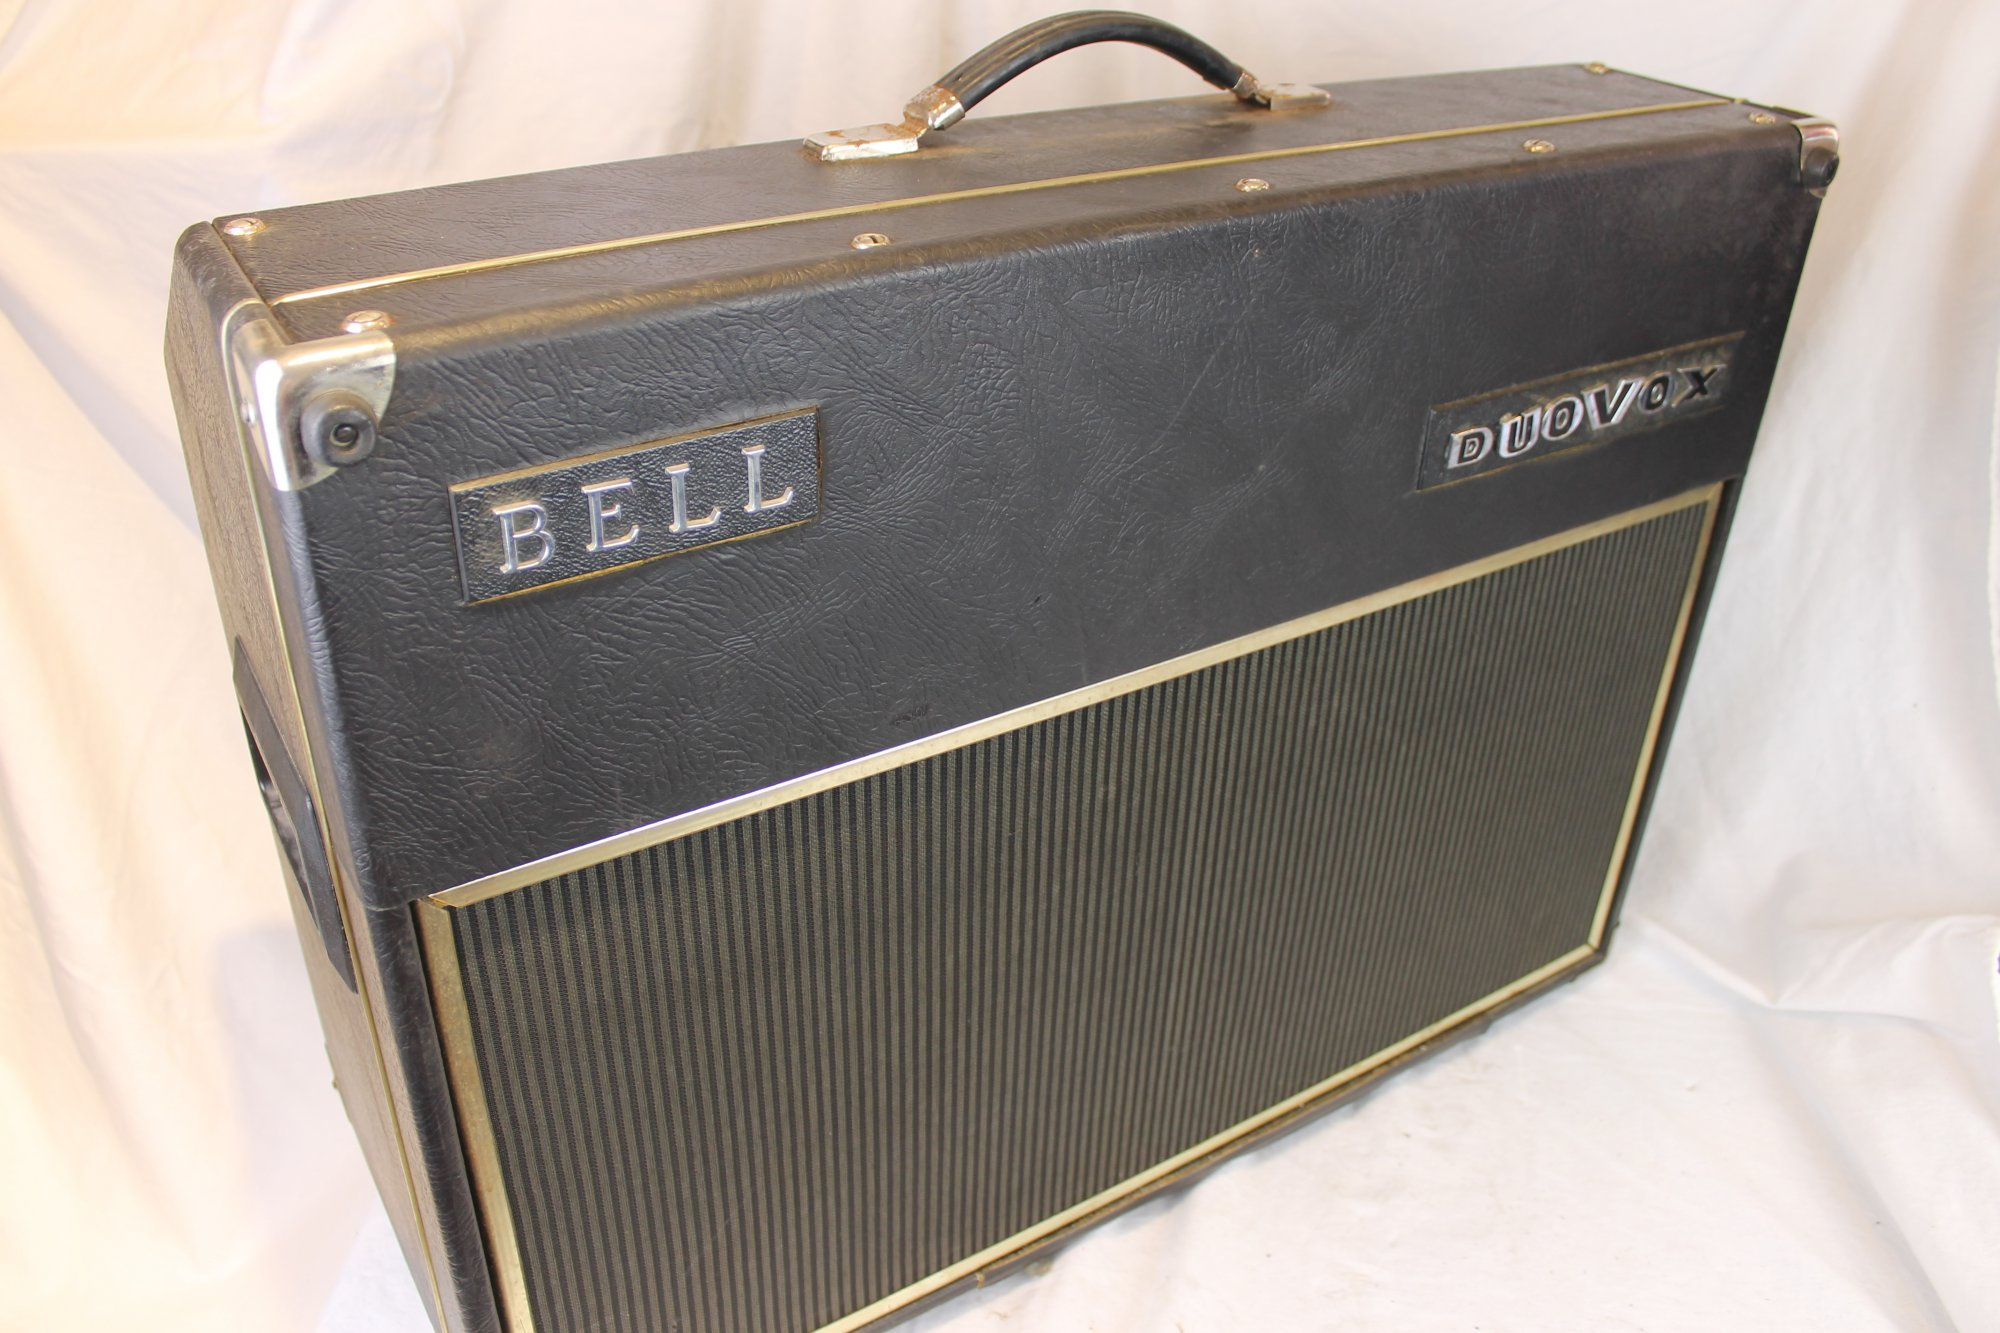 6150 - Bell Duovox Transistorized Instrument Amplifier - For Parts or Repair